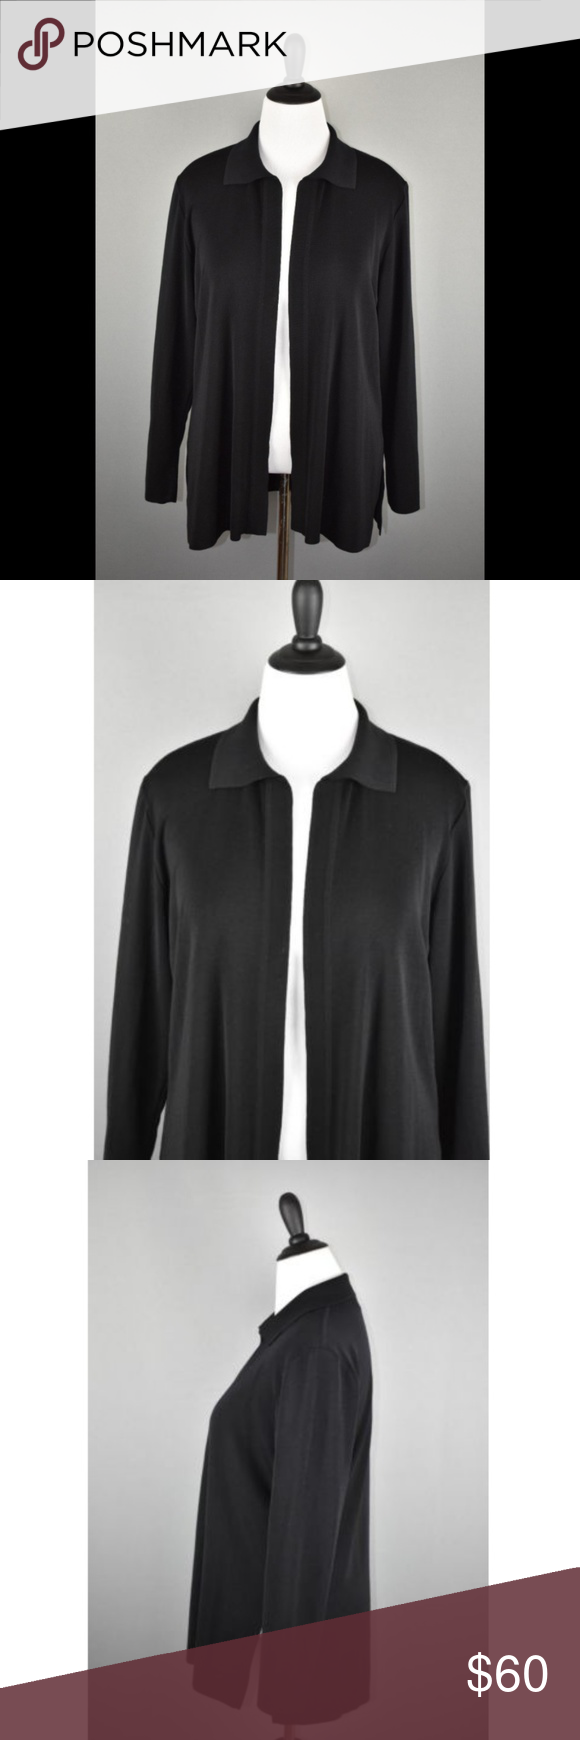 Exclusively Misook Black Acrylic Open Cardigan Excellent Condition Size Tag Has Been Removed Size 1x Determined By Comp Clothes Design Open Cardigan Cardigan